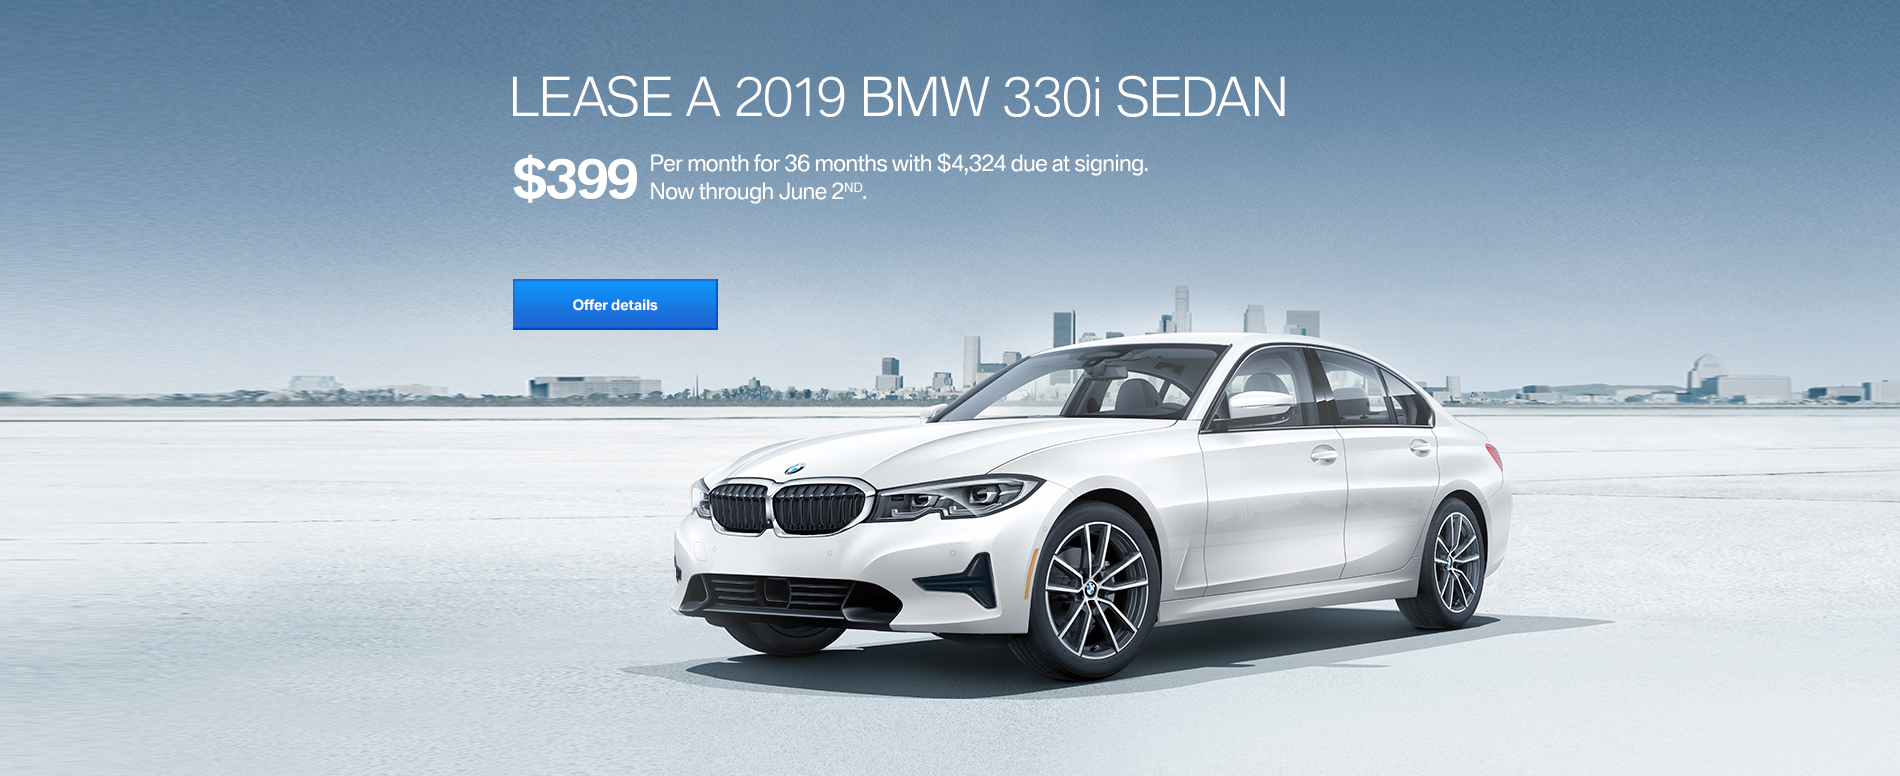 LEASE A 2019 BMW 330i FOR $399/MONTH FOR 36 MONTHS WITH $4,324 D